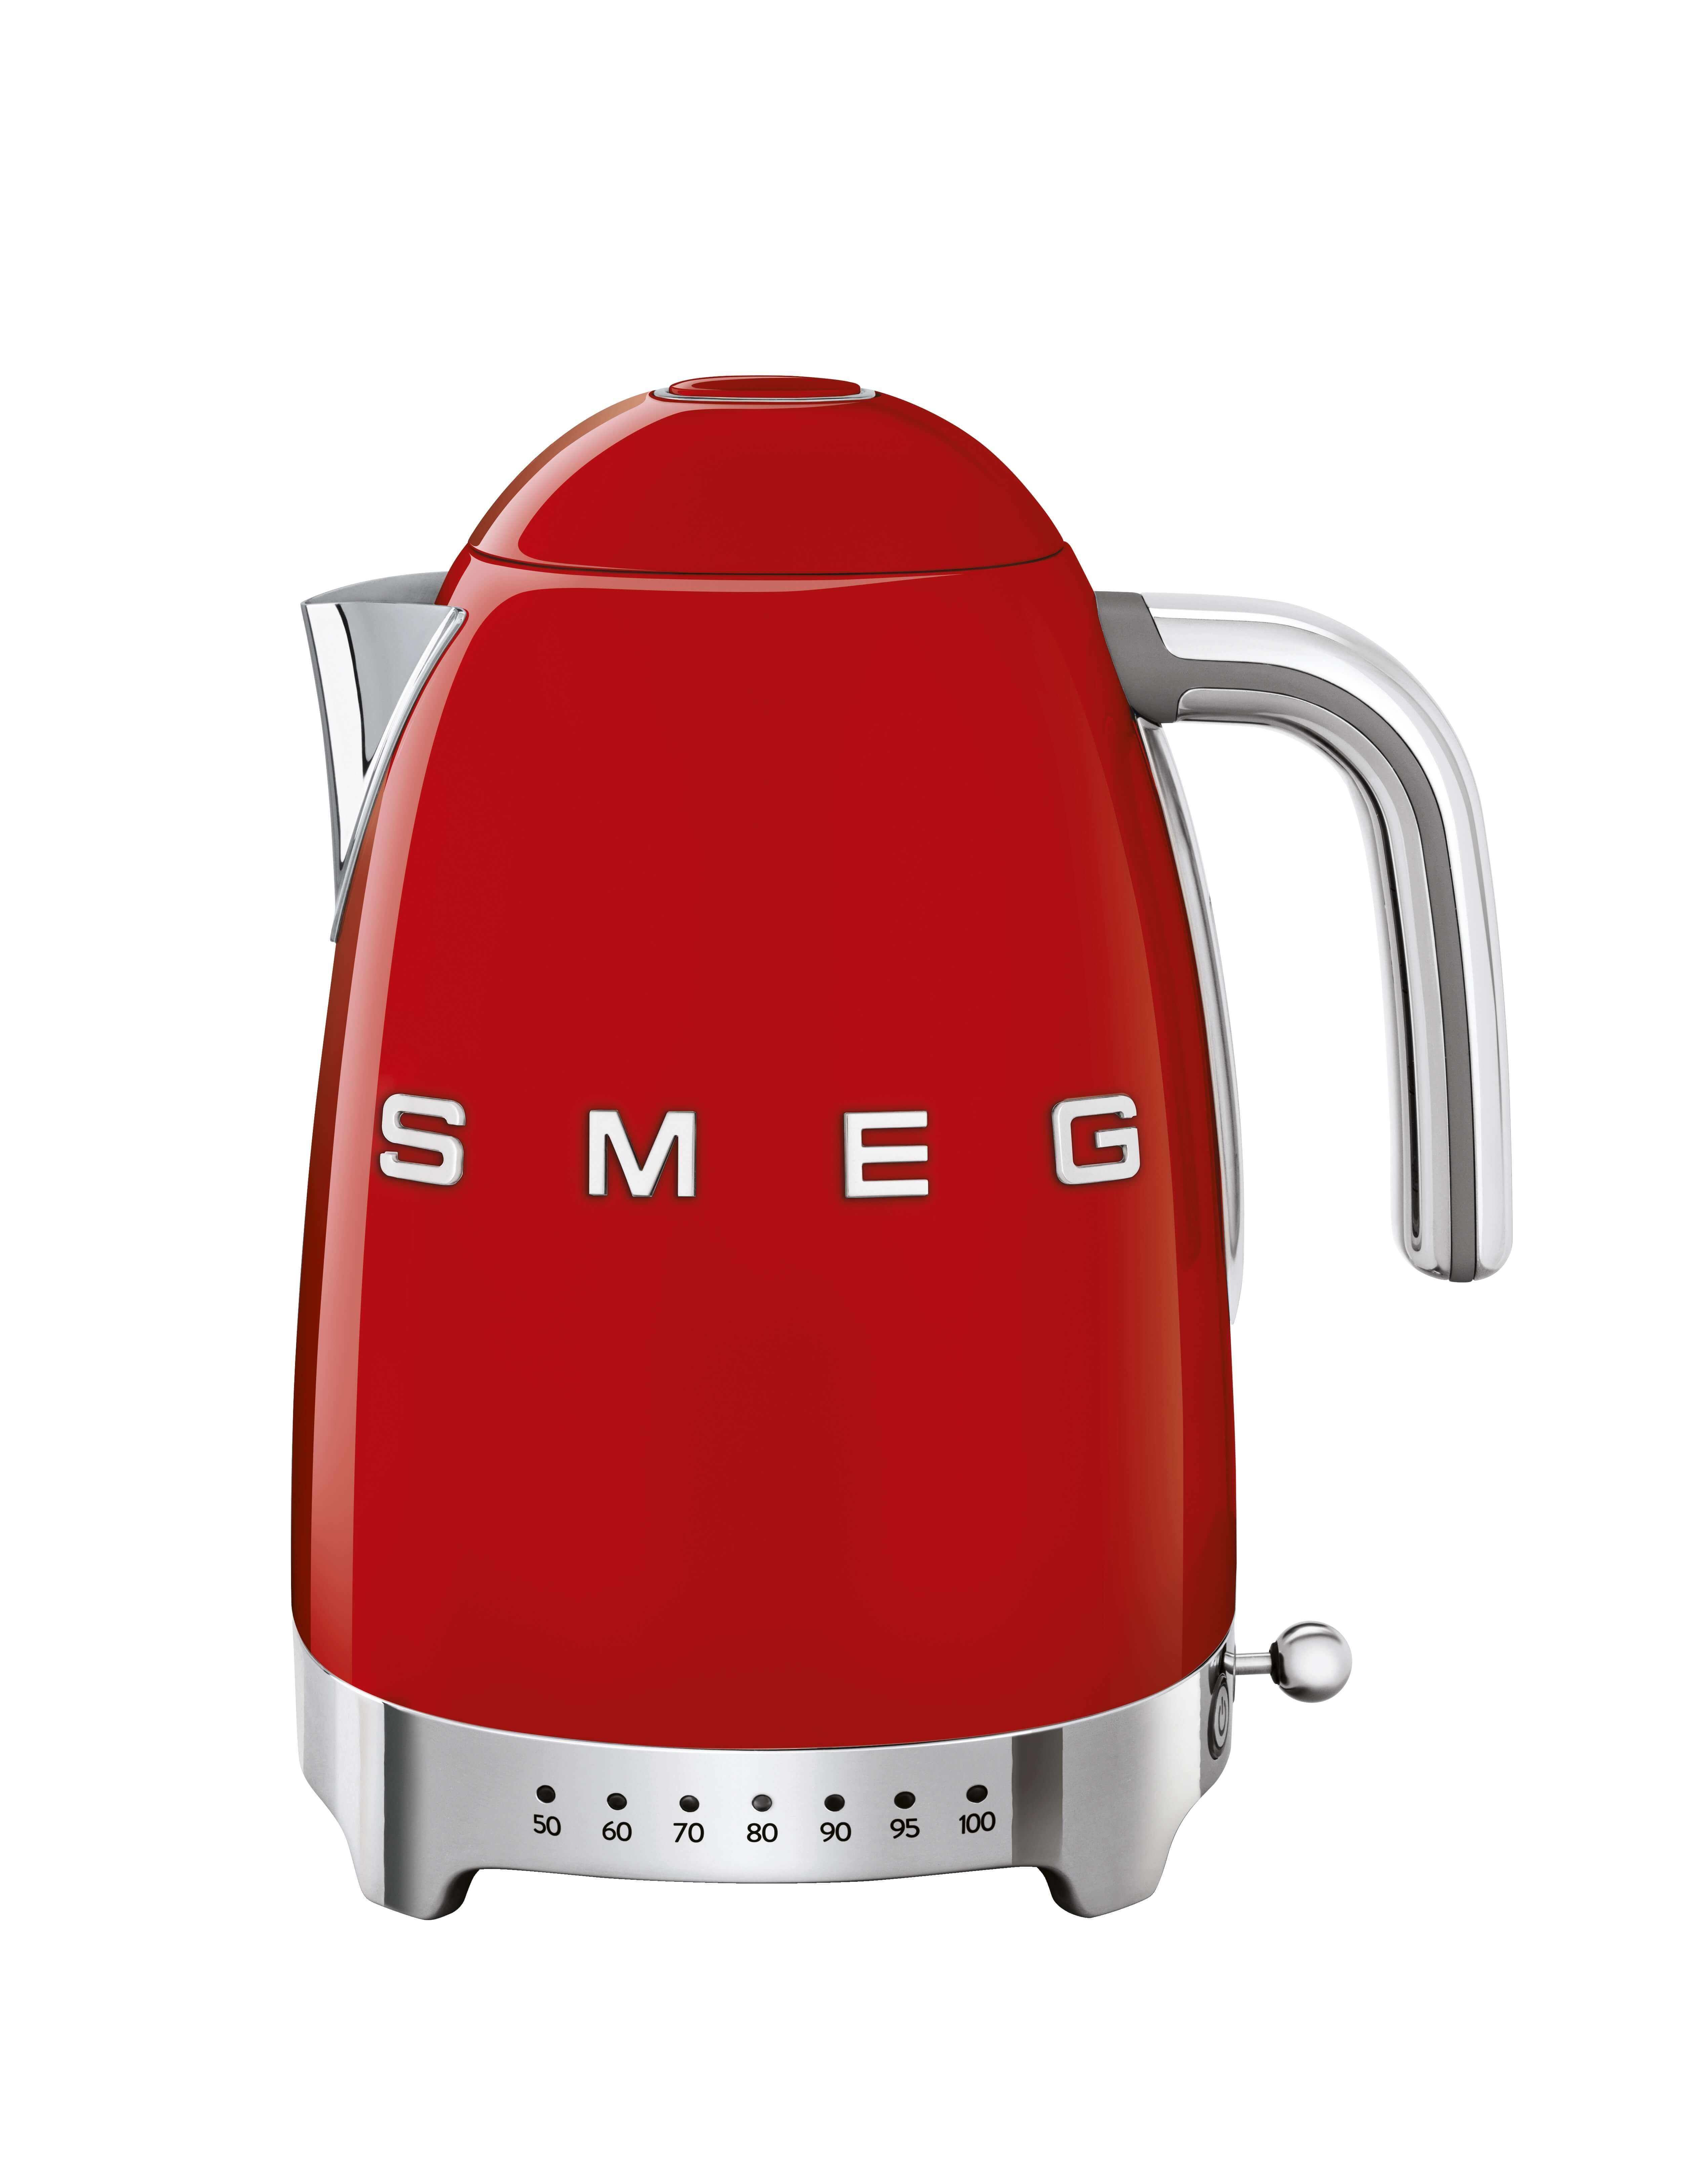 SMEG Variable Temperature Kettle 1.7L Red - KLF04RDUK